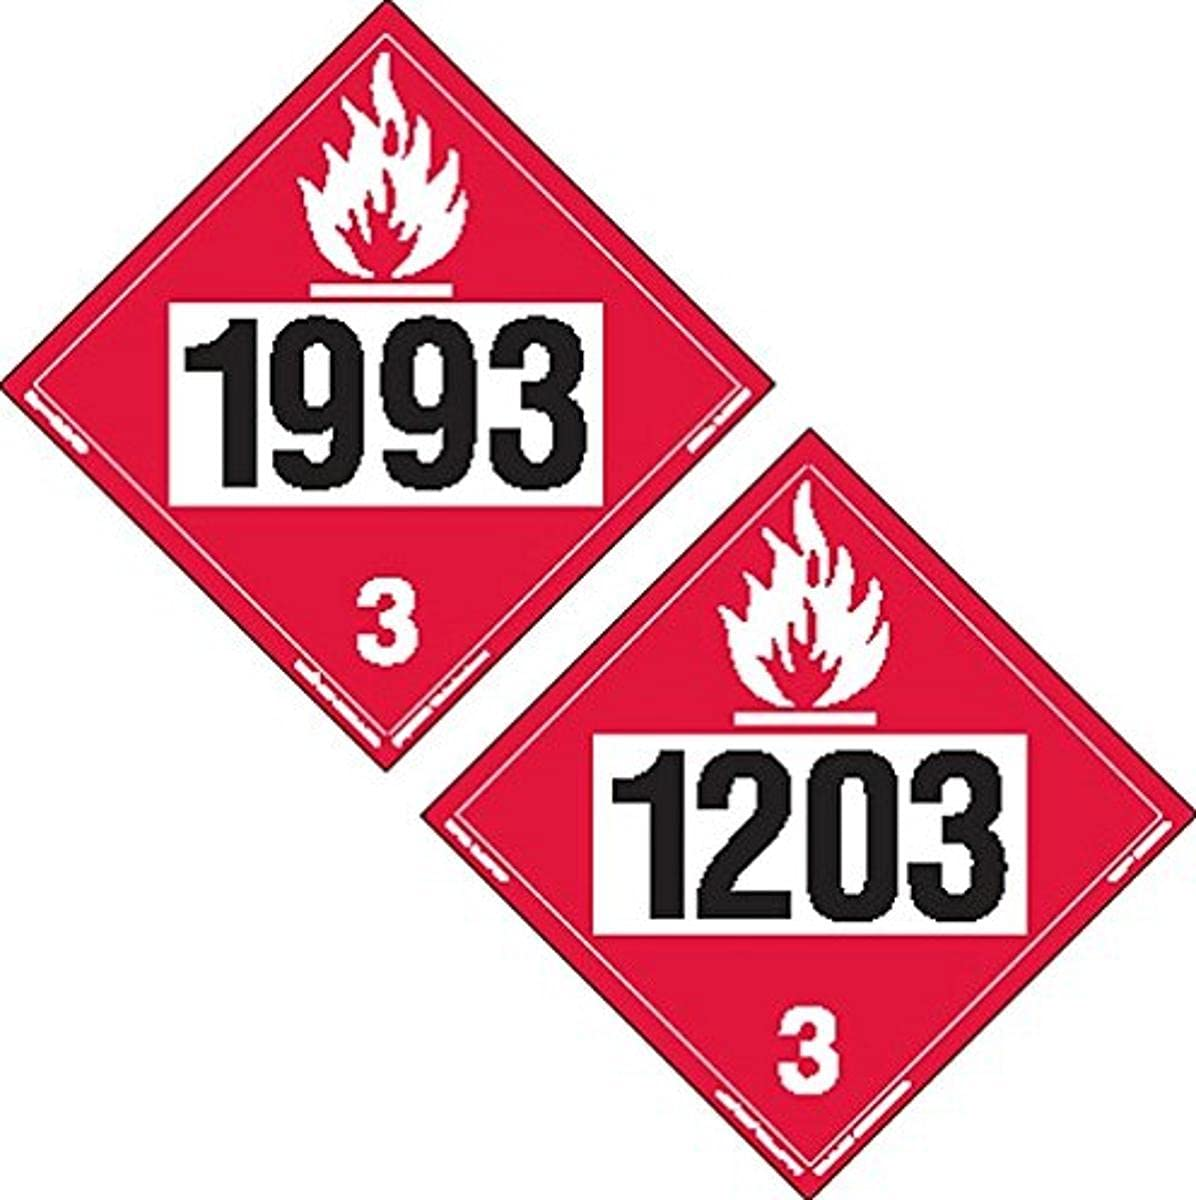 safety Labelmaster ZTV20393 Two-Sided 4-Digit Placard Hazmat 1993 Flam mart